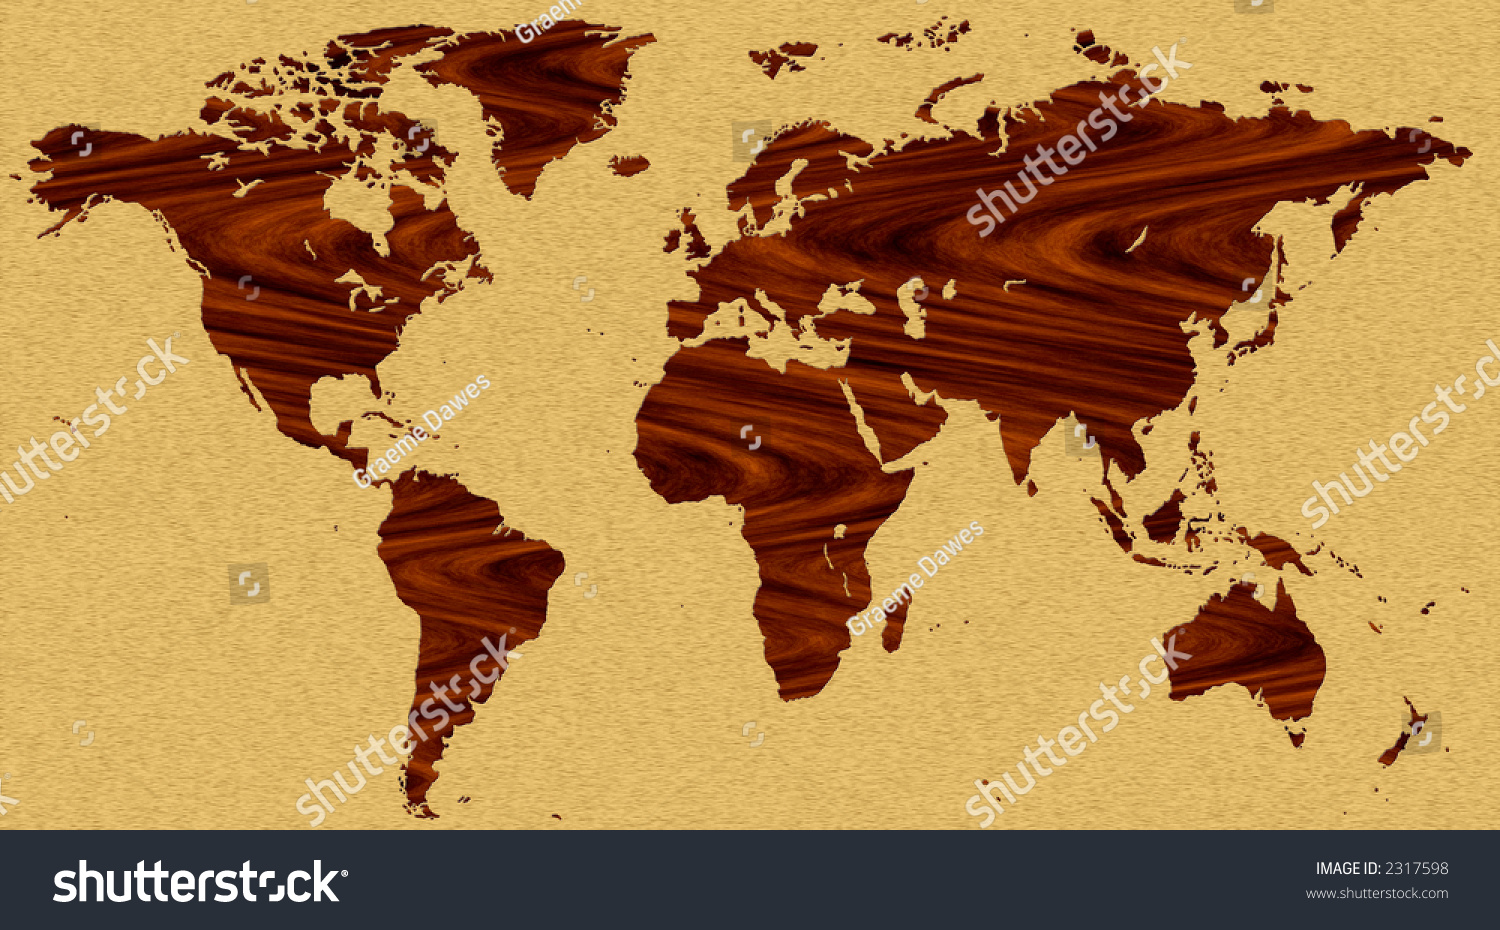 World map rosewood land inlaid into stock illustration 2317598 world map rosewood land inlaid into stock illustration 2317598 shutterstock gumiabroncs Gallery